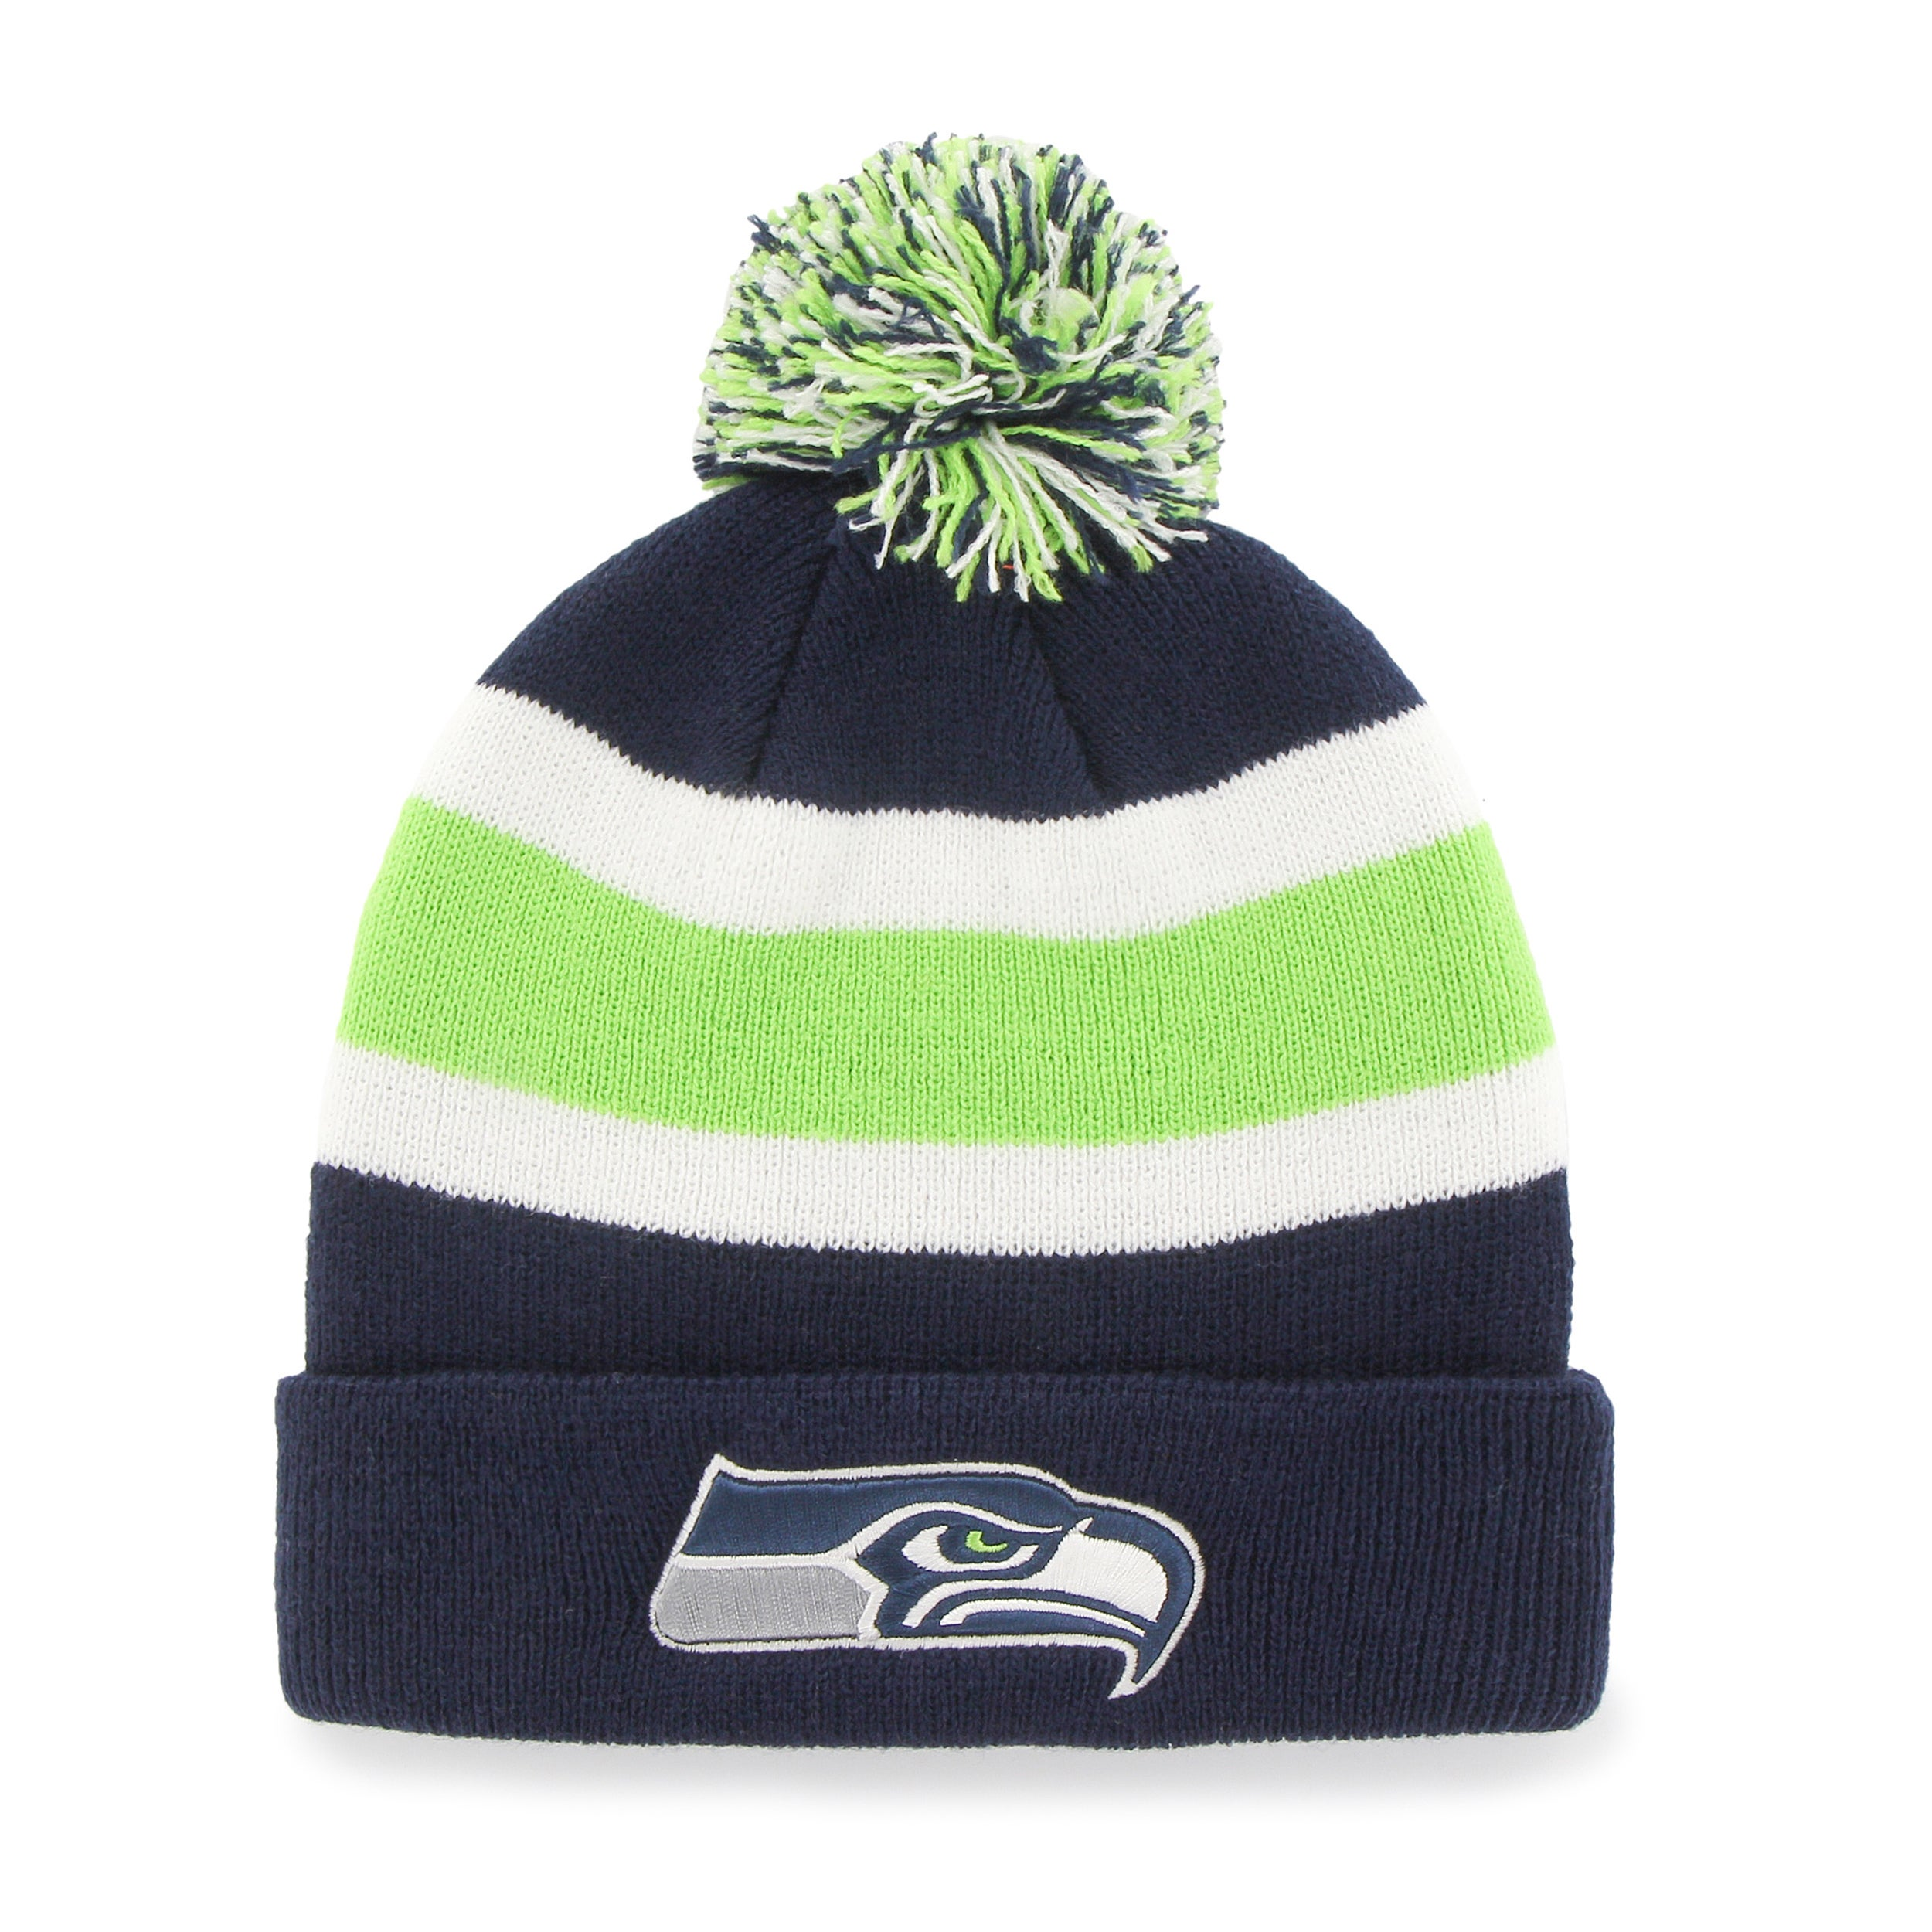 237daa6cc Shop 47 Brand Seattle Seahawks Breakaway Beanie Hat - Free Shipping On  Orders Over  45 - Overstock - 10654542